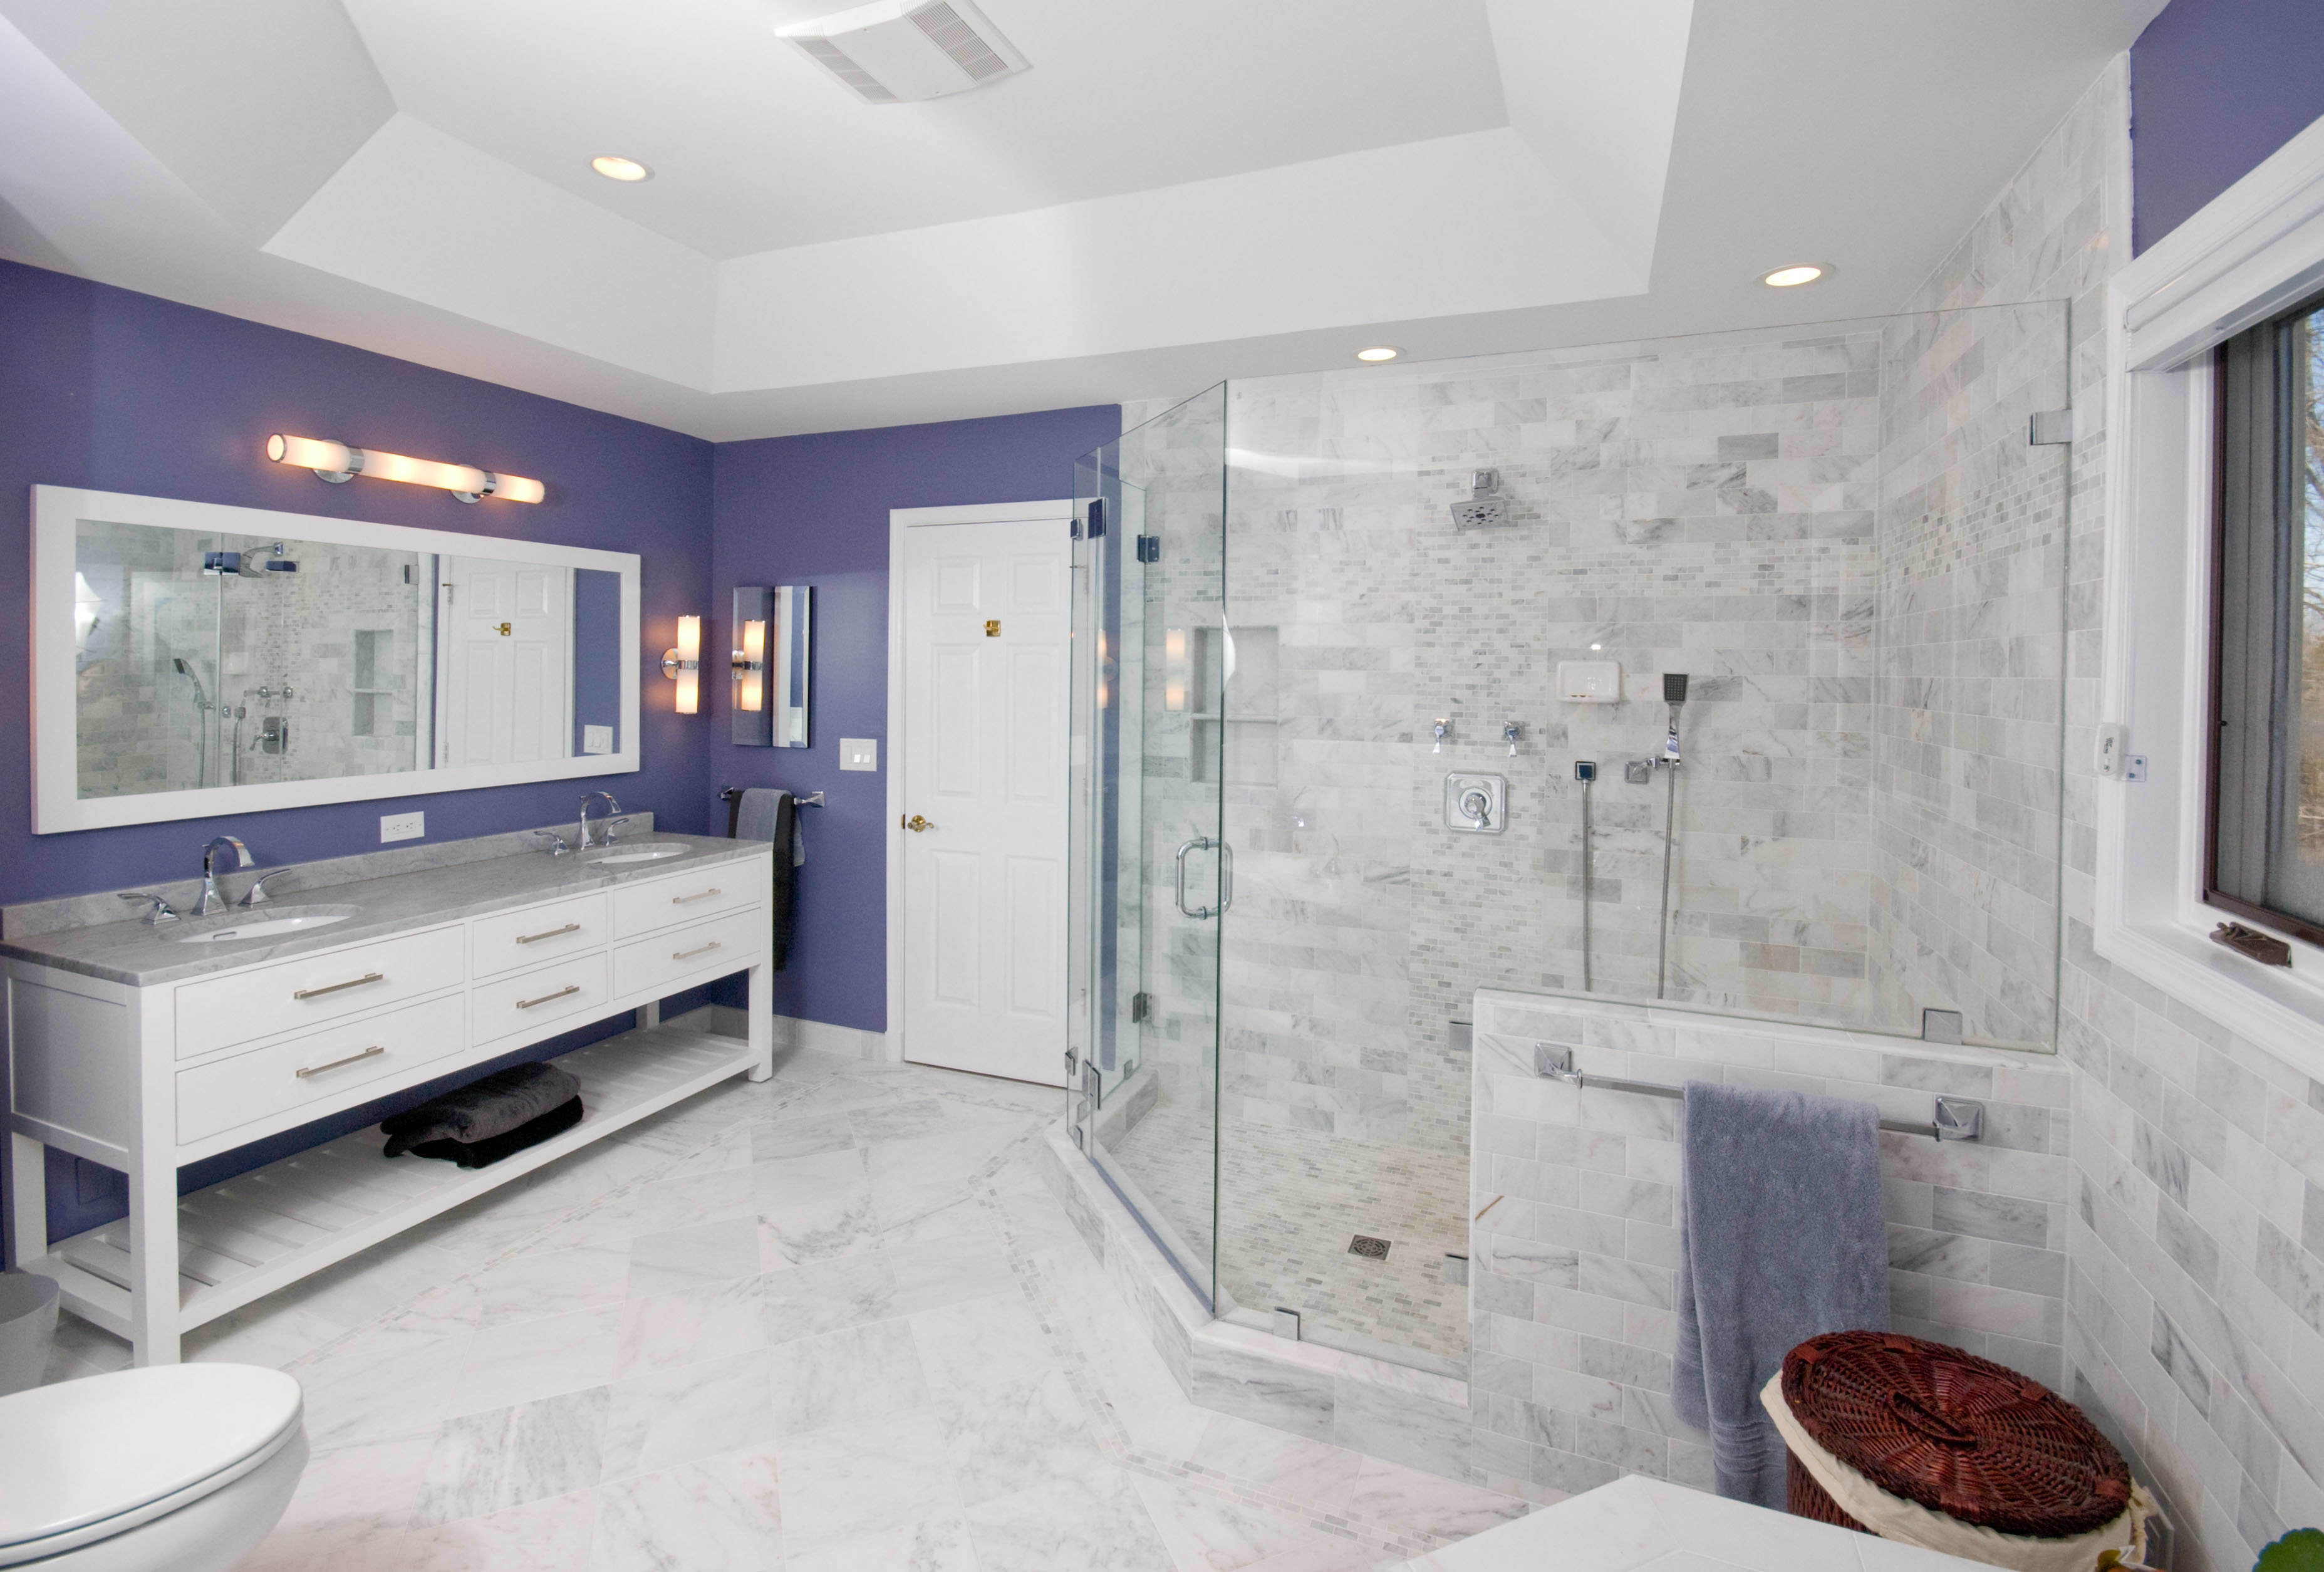 When You Dream Of Your Ideal Bathroom, What Does It Look Like? When You  Envision Your Bathroom What Types Of Materials Would You Choose?